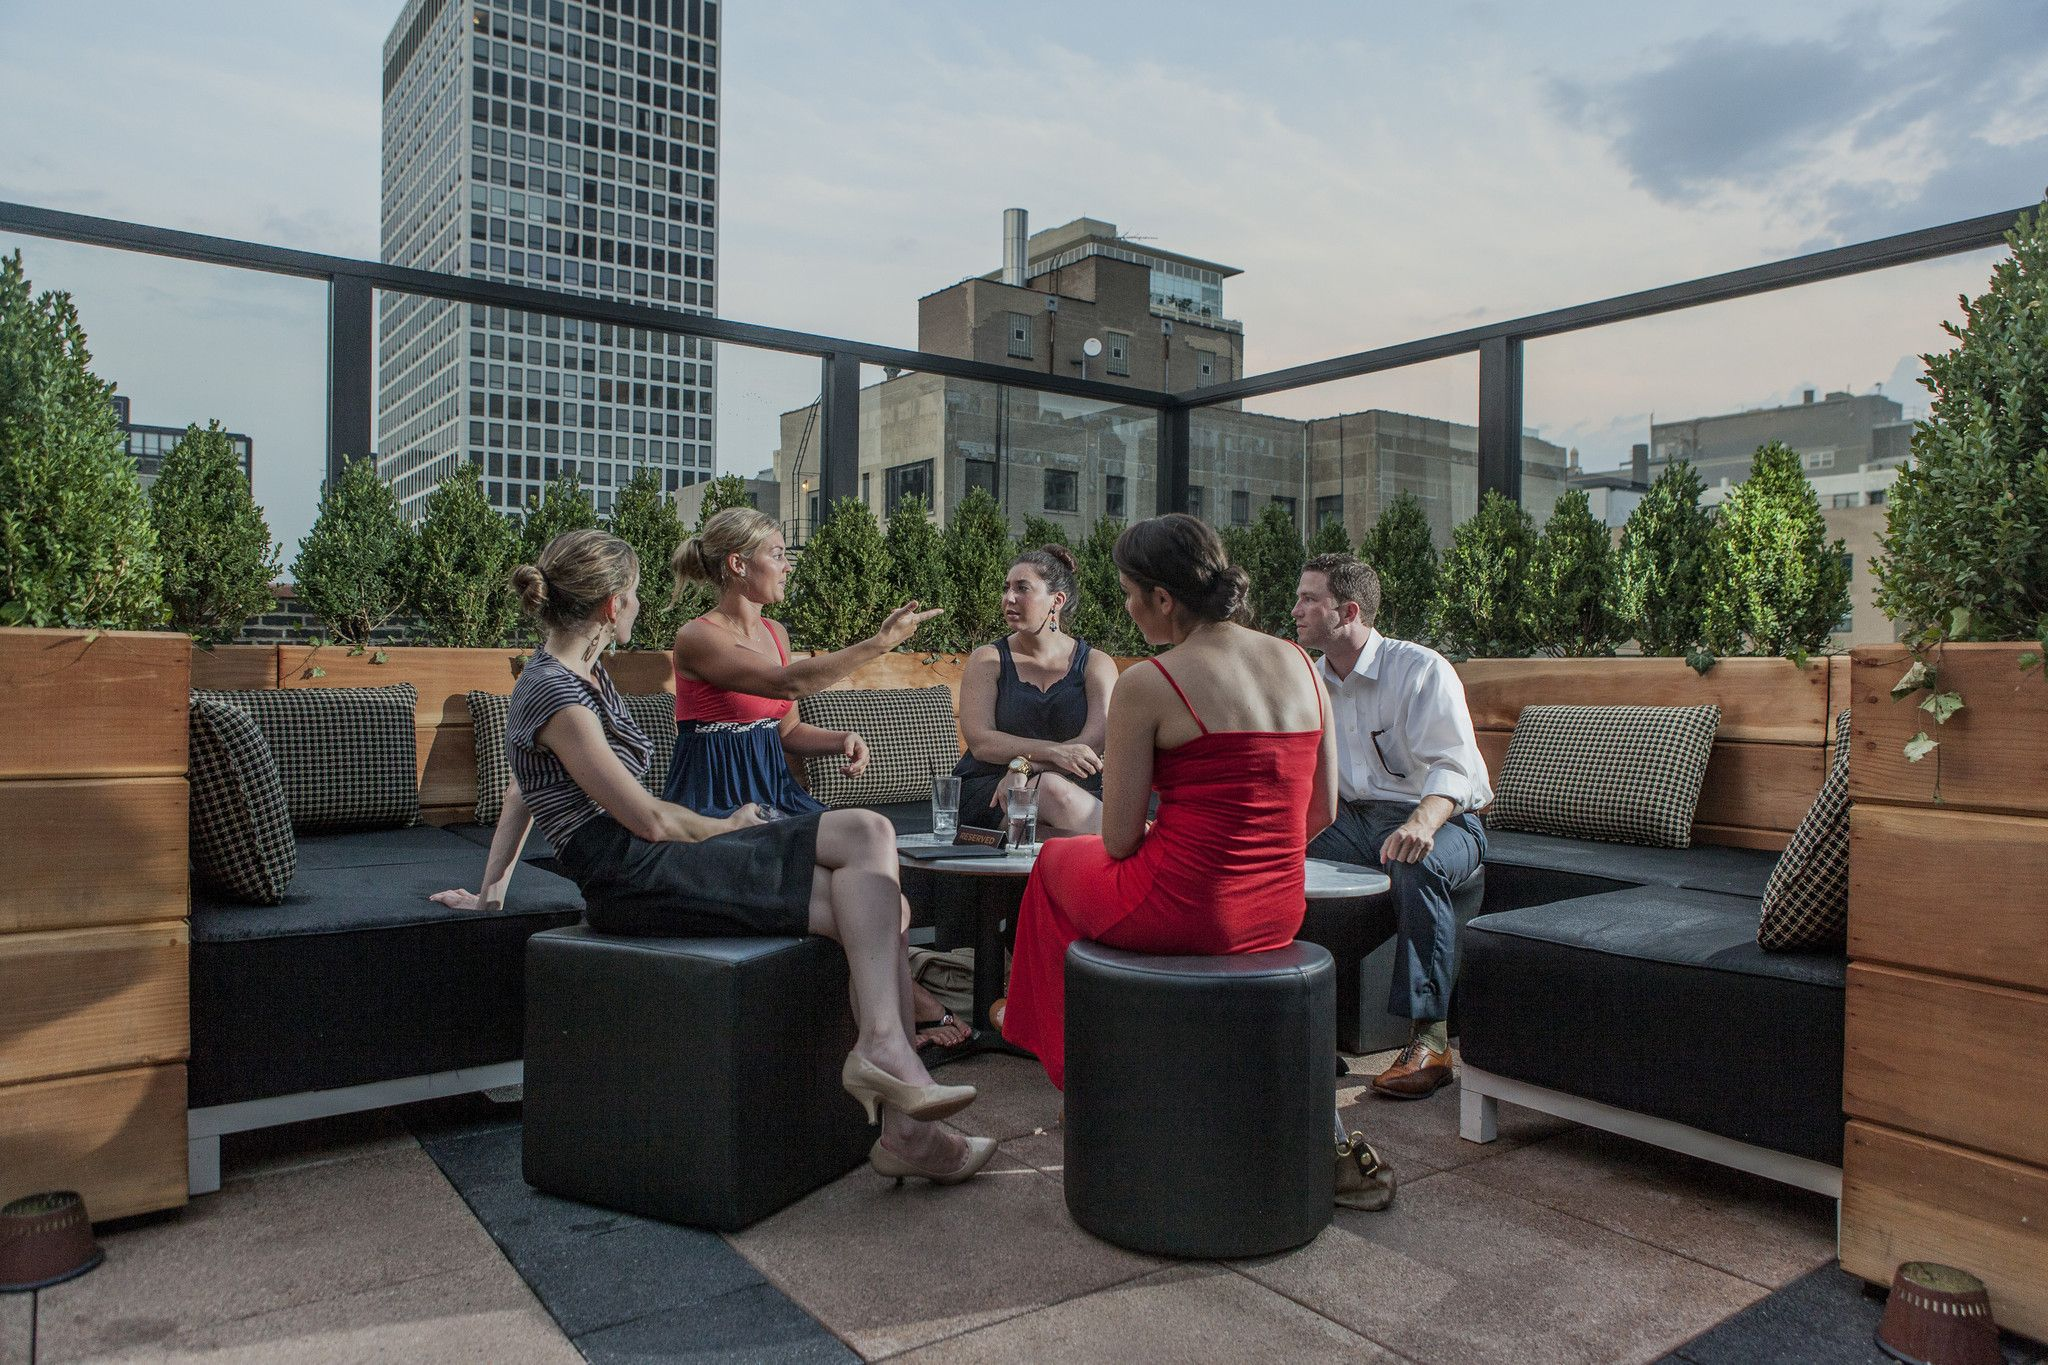 Chicago Patios, Rooftops Open Now These Patios, Sidewalk Cafes And Rooftop  Bars Are Already